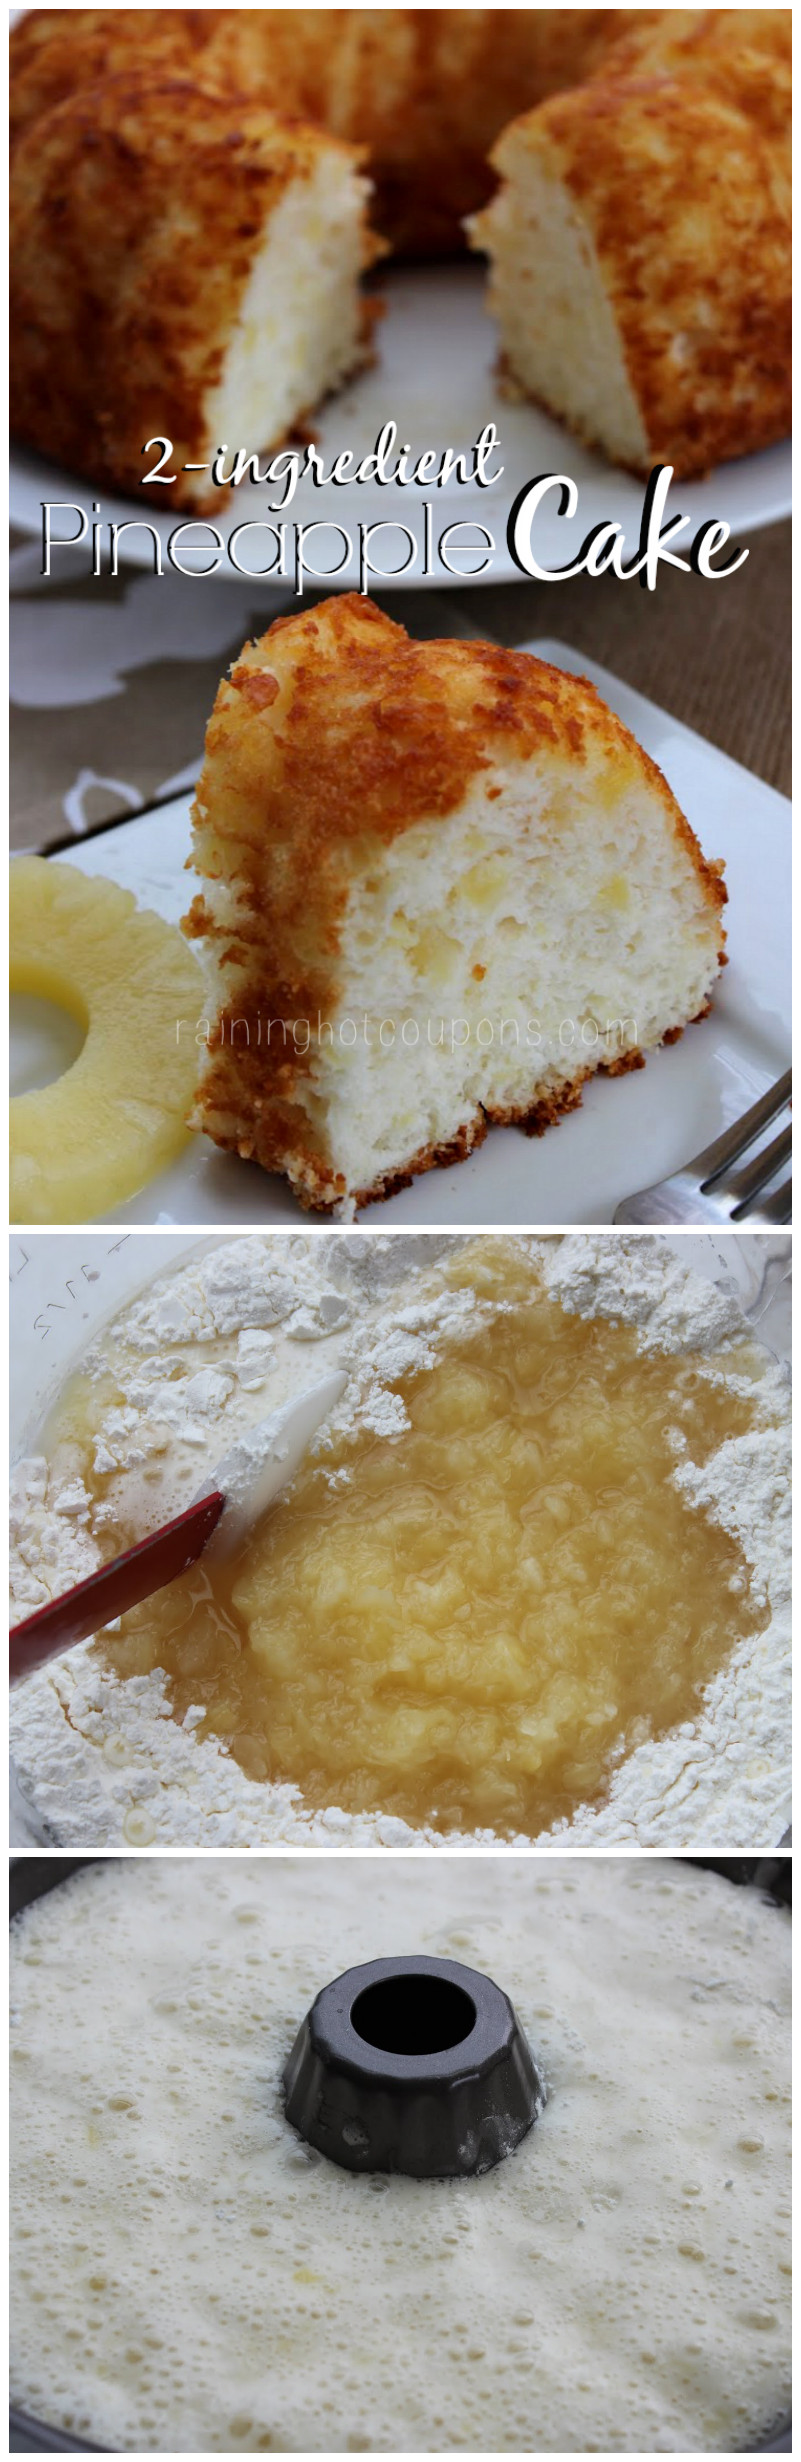 Angel Food Cake And Pineapples  Pineapple Cake ly 2 Ingre nts